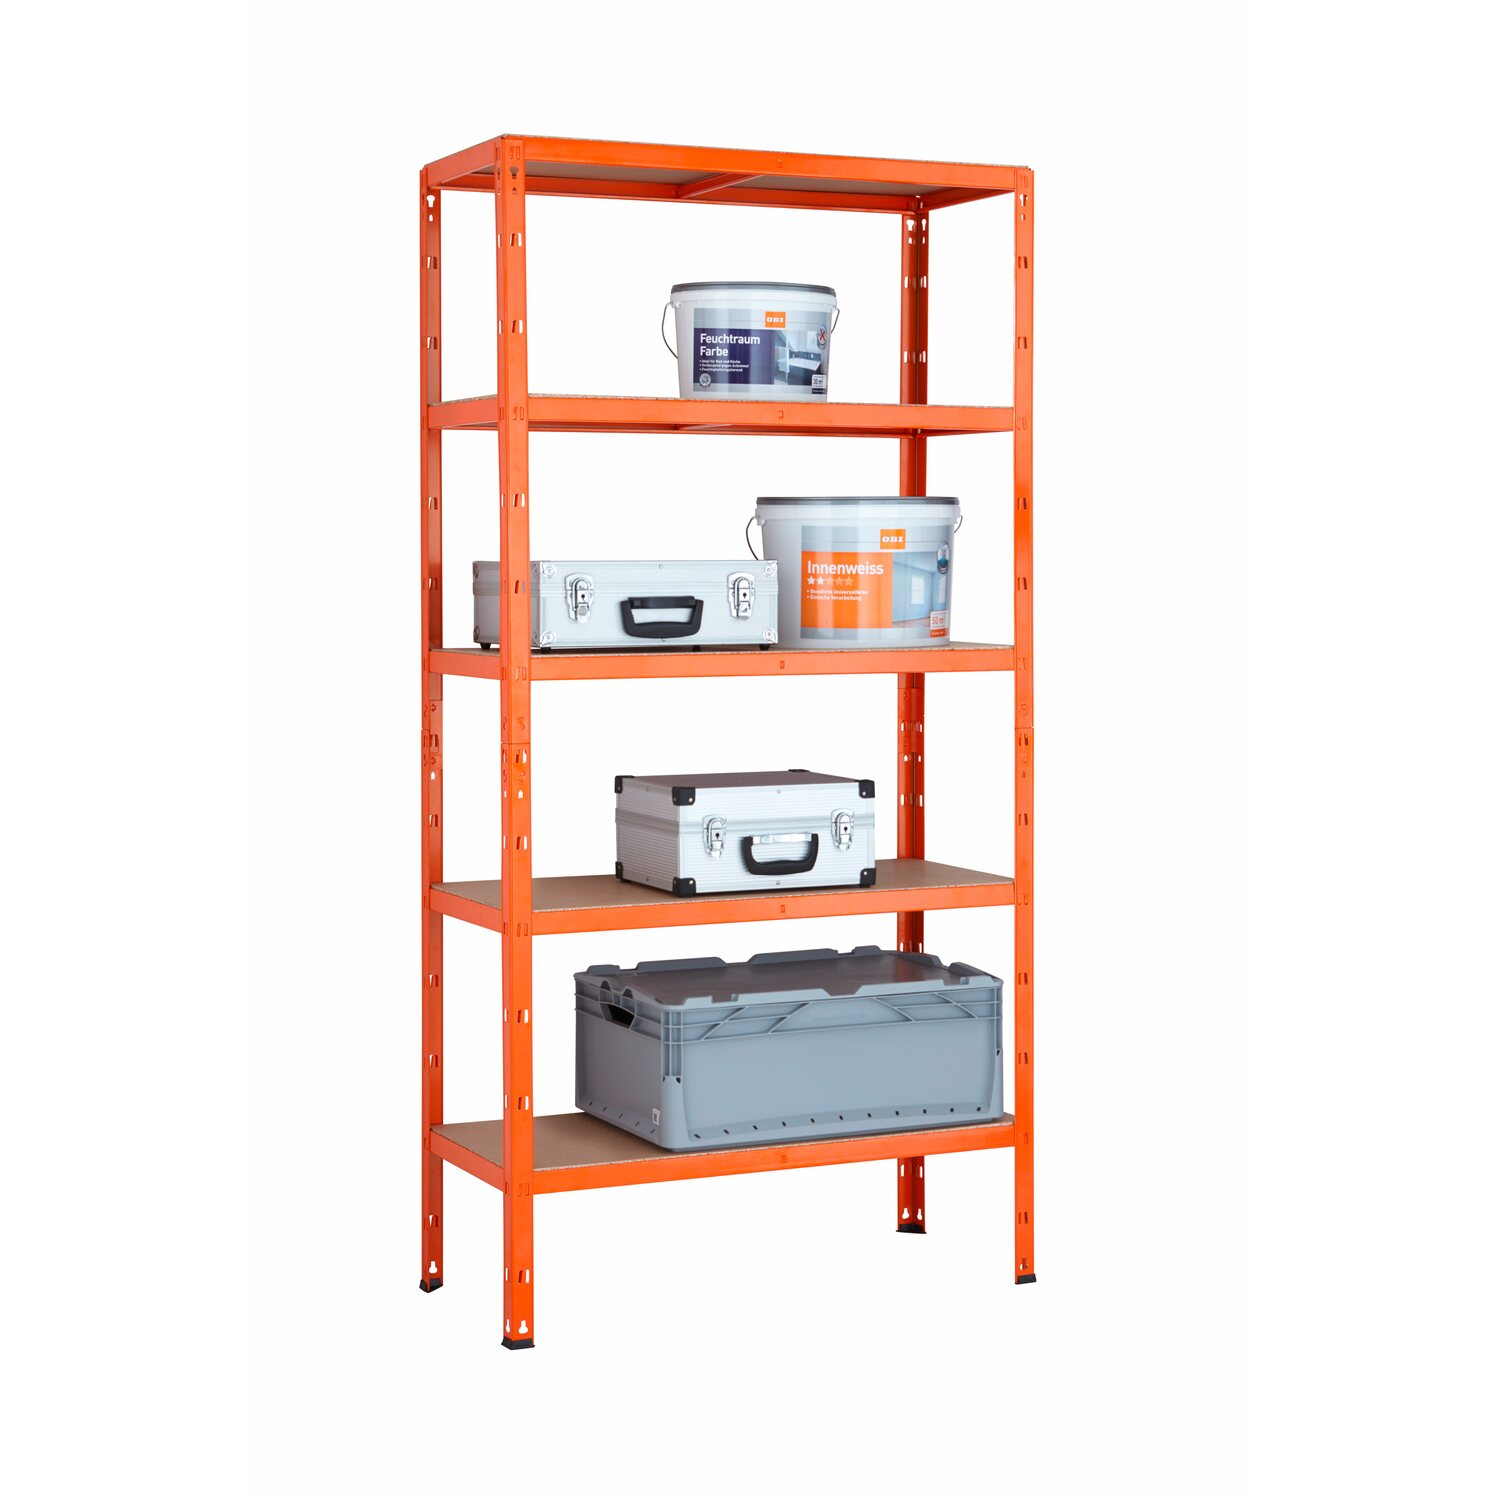 metall schwerlastregal steckregal orange 180 cm x 90 cm x. Black Bedroom Furniture Sets. Home Design Ideas